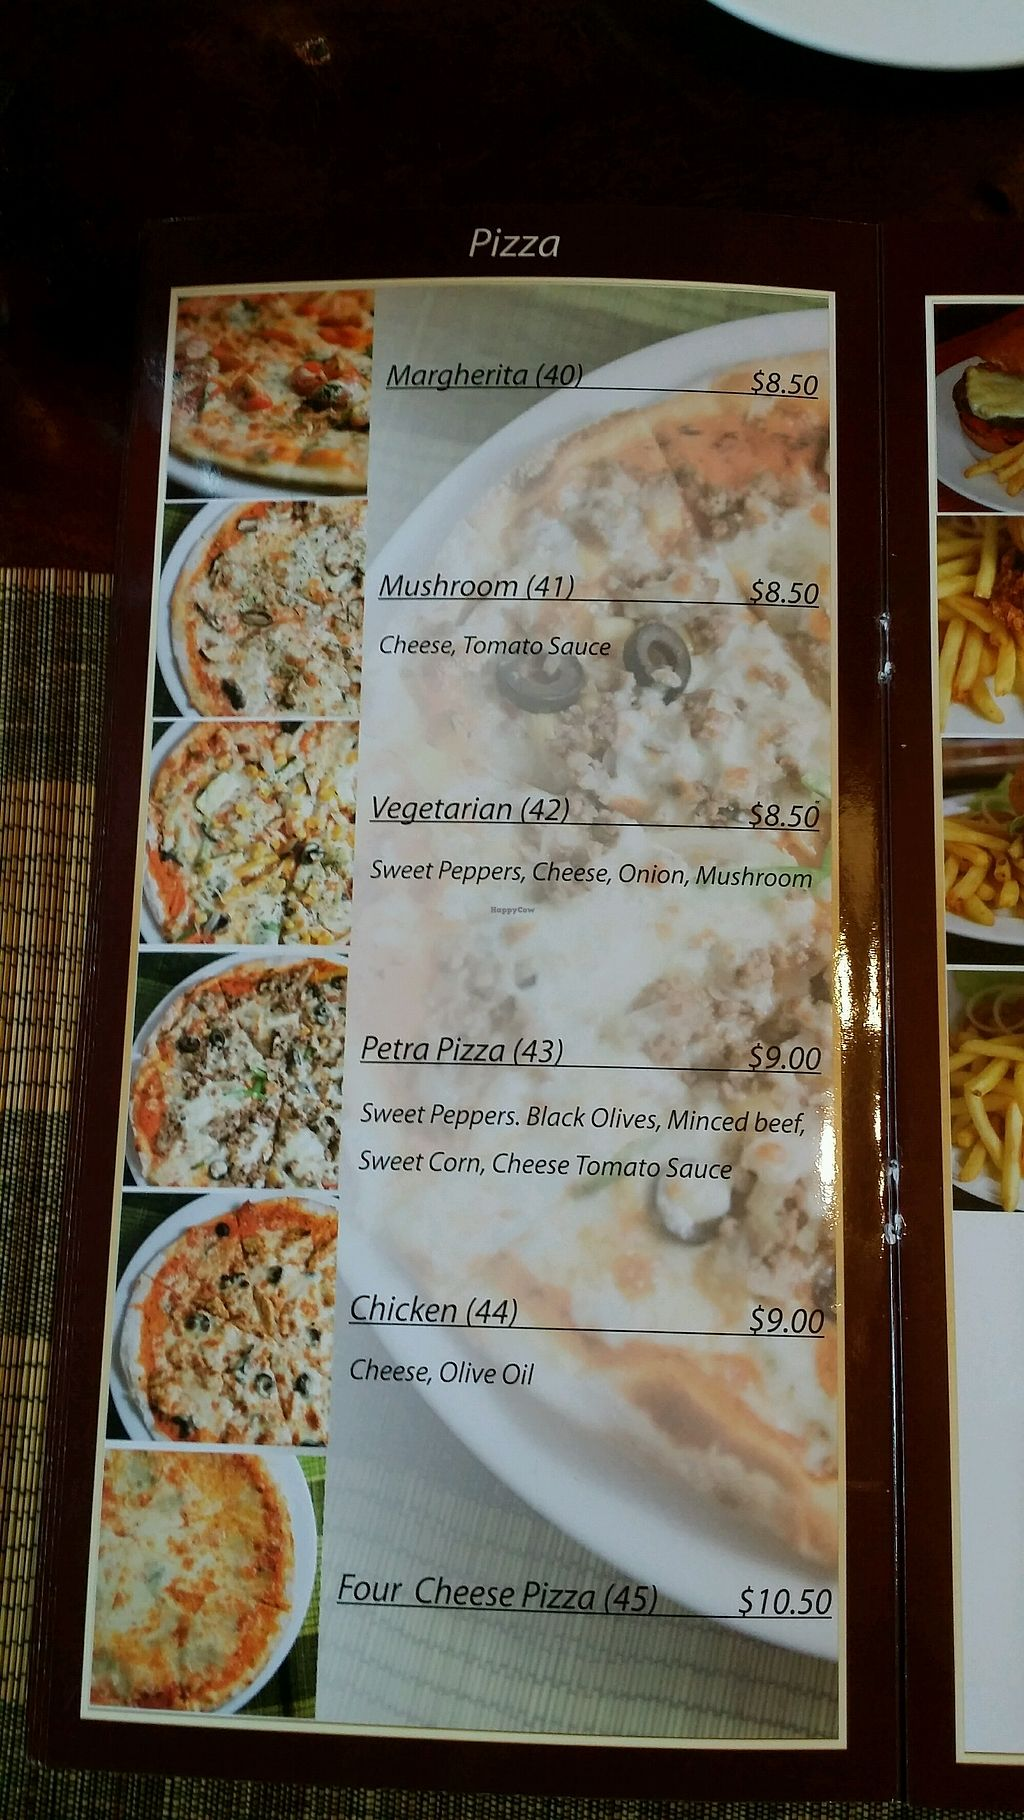 """Photo of Petra Restaurant  by <a href=""""/members/profile/Mike%20Munsie"""">Mike Munsie</a> <br/>pizza menu <br/> September 9, 2017  - <a href='/contact/abuse/image/93857/302454'>Report</a>"""